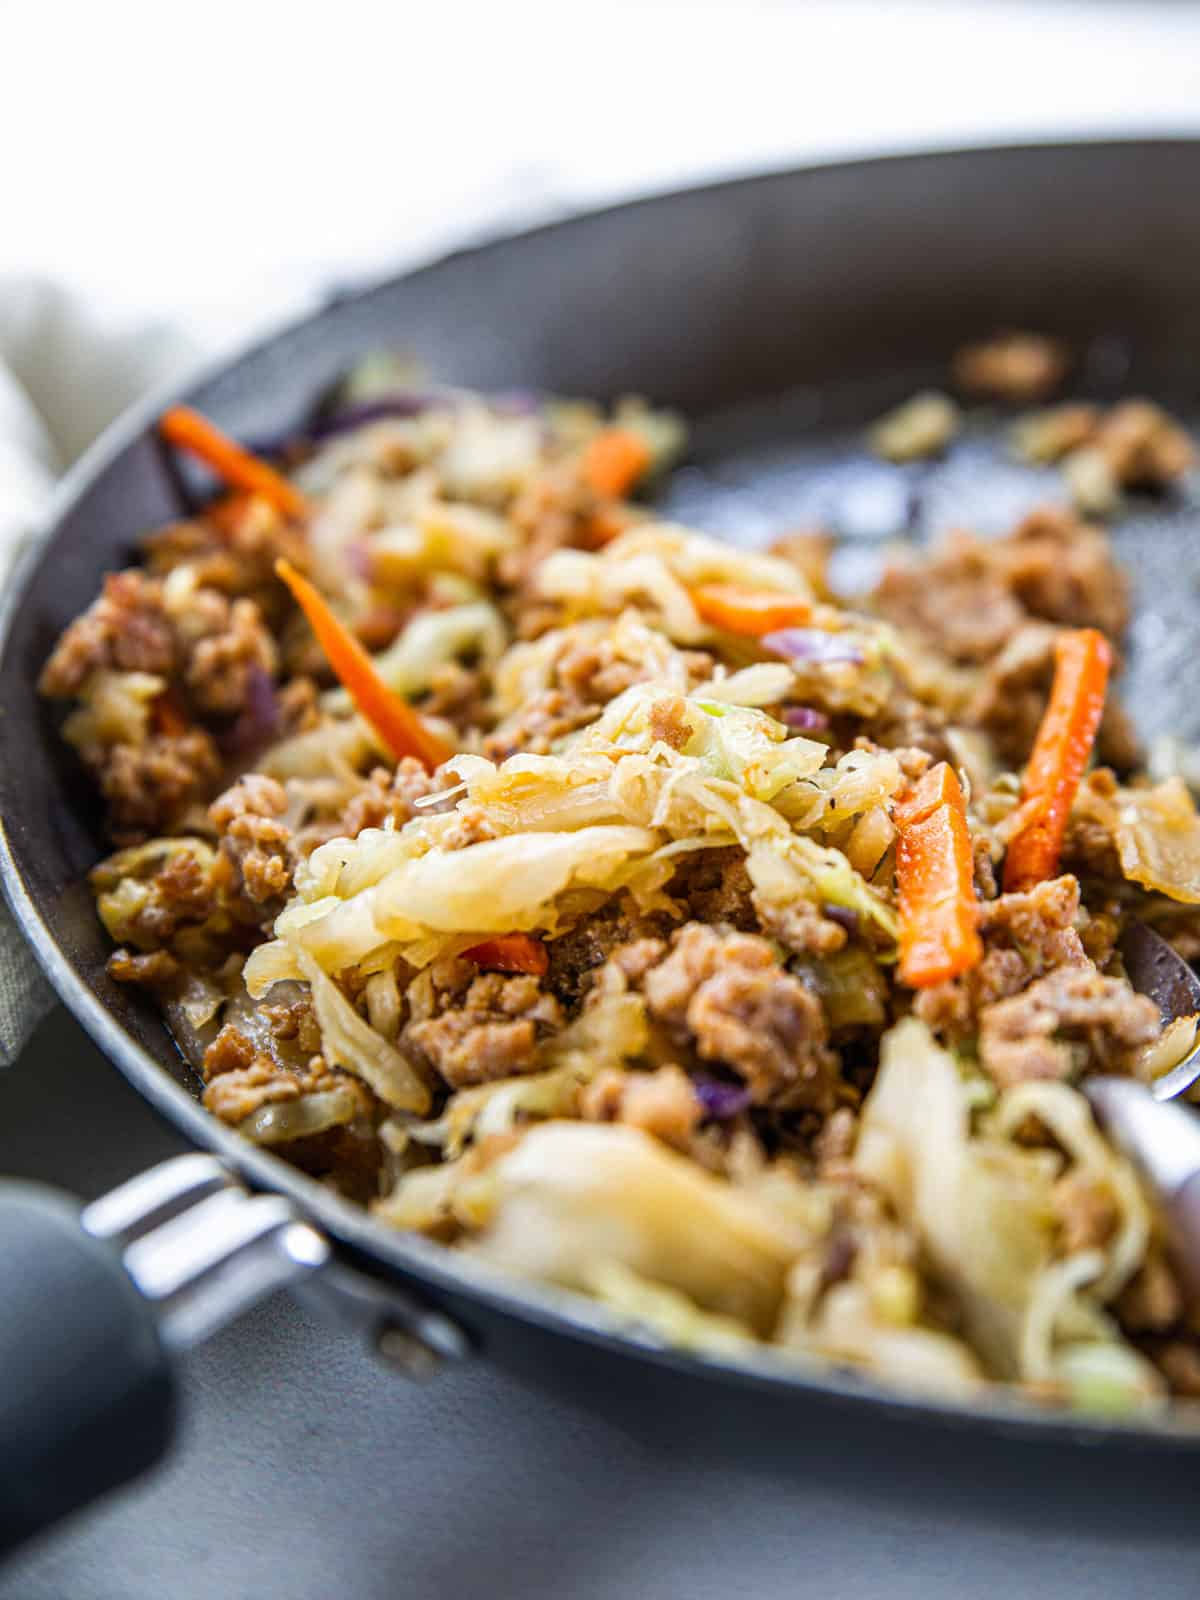 Pork egg roll stuffing shown cooked in a skillet up close.